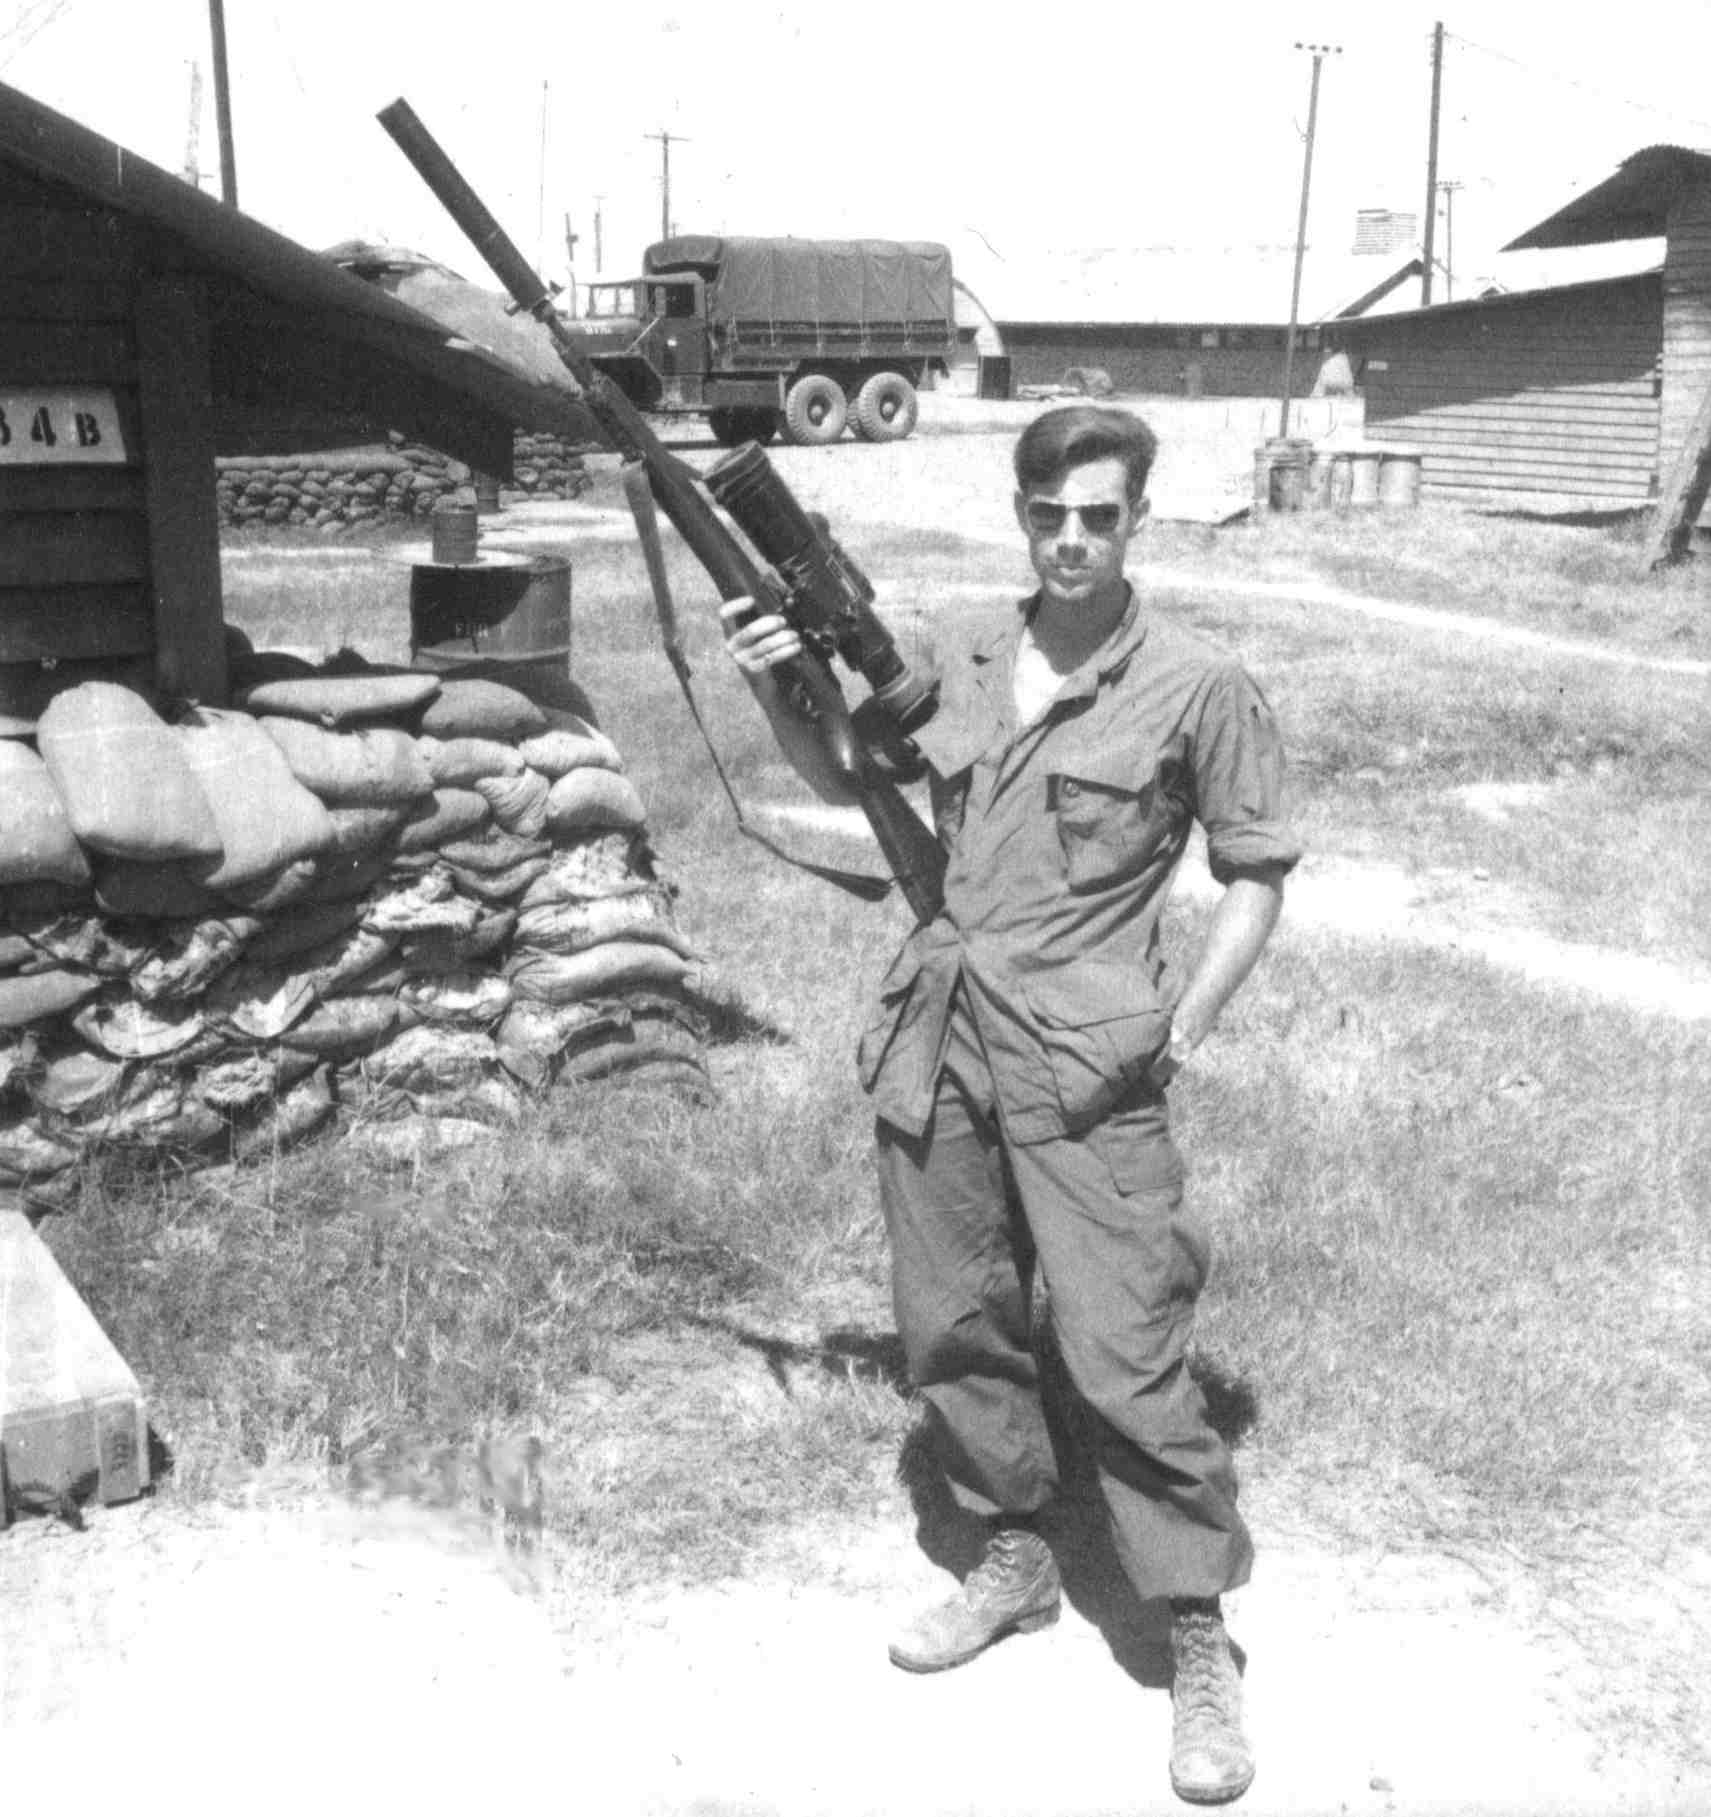 the role of the marine nco in the vietnam war Vietnam war marines corps official history volumes  all the while marine air  played a pivotal role in providing fire support, ch-46 and uh-34 helicopters.